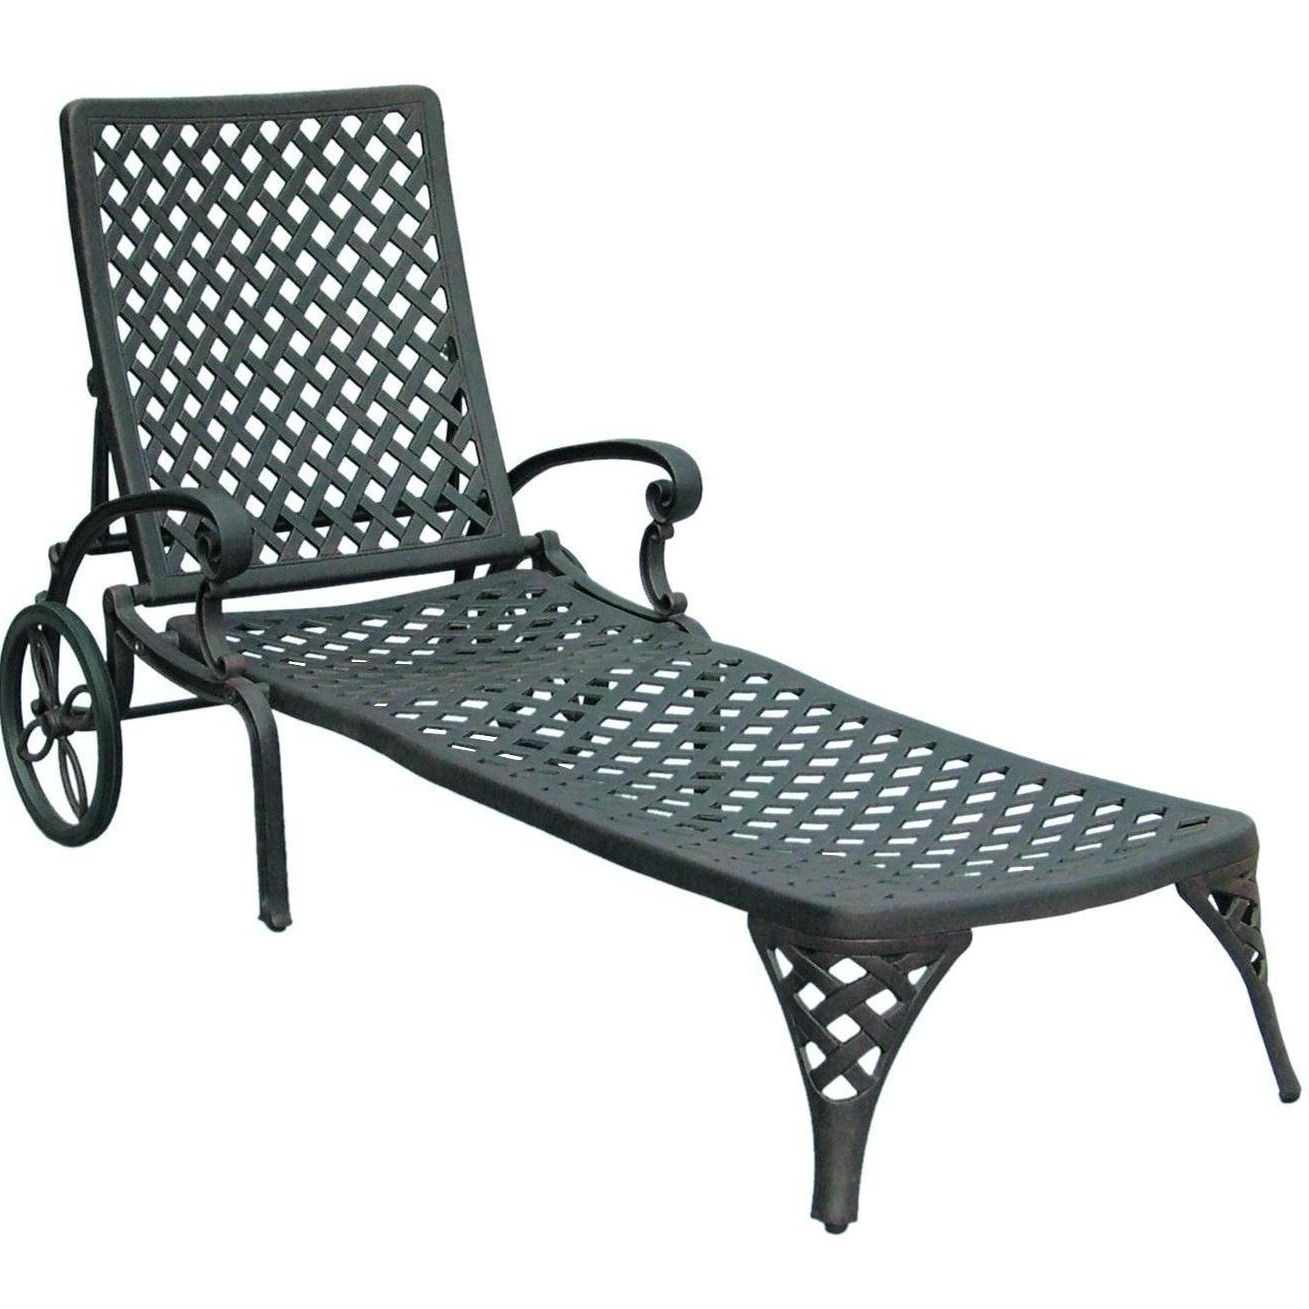 2018 Darlee Nassau Cast Aluminum Patio Chaise Lounge : Ultimate Patio Intended For Cast Aluminum Chaise Lounges With Wheels (View 1 of 15)